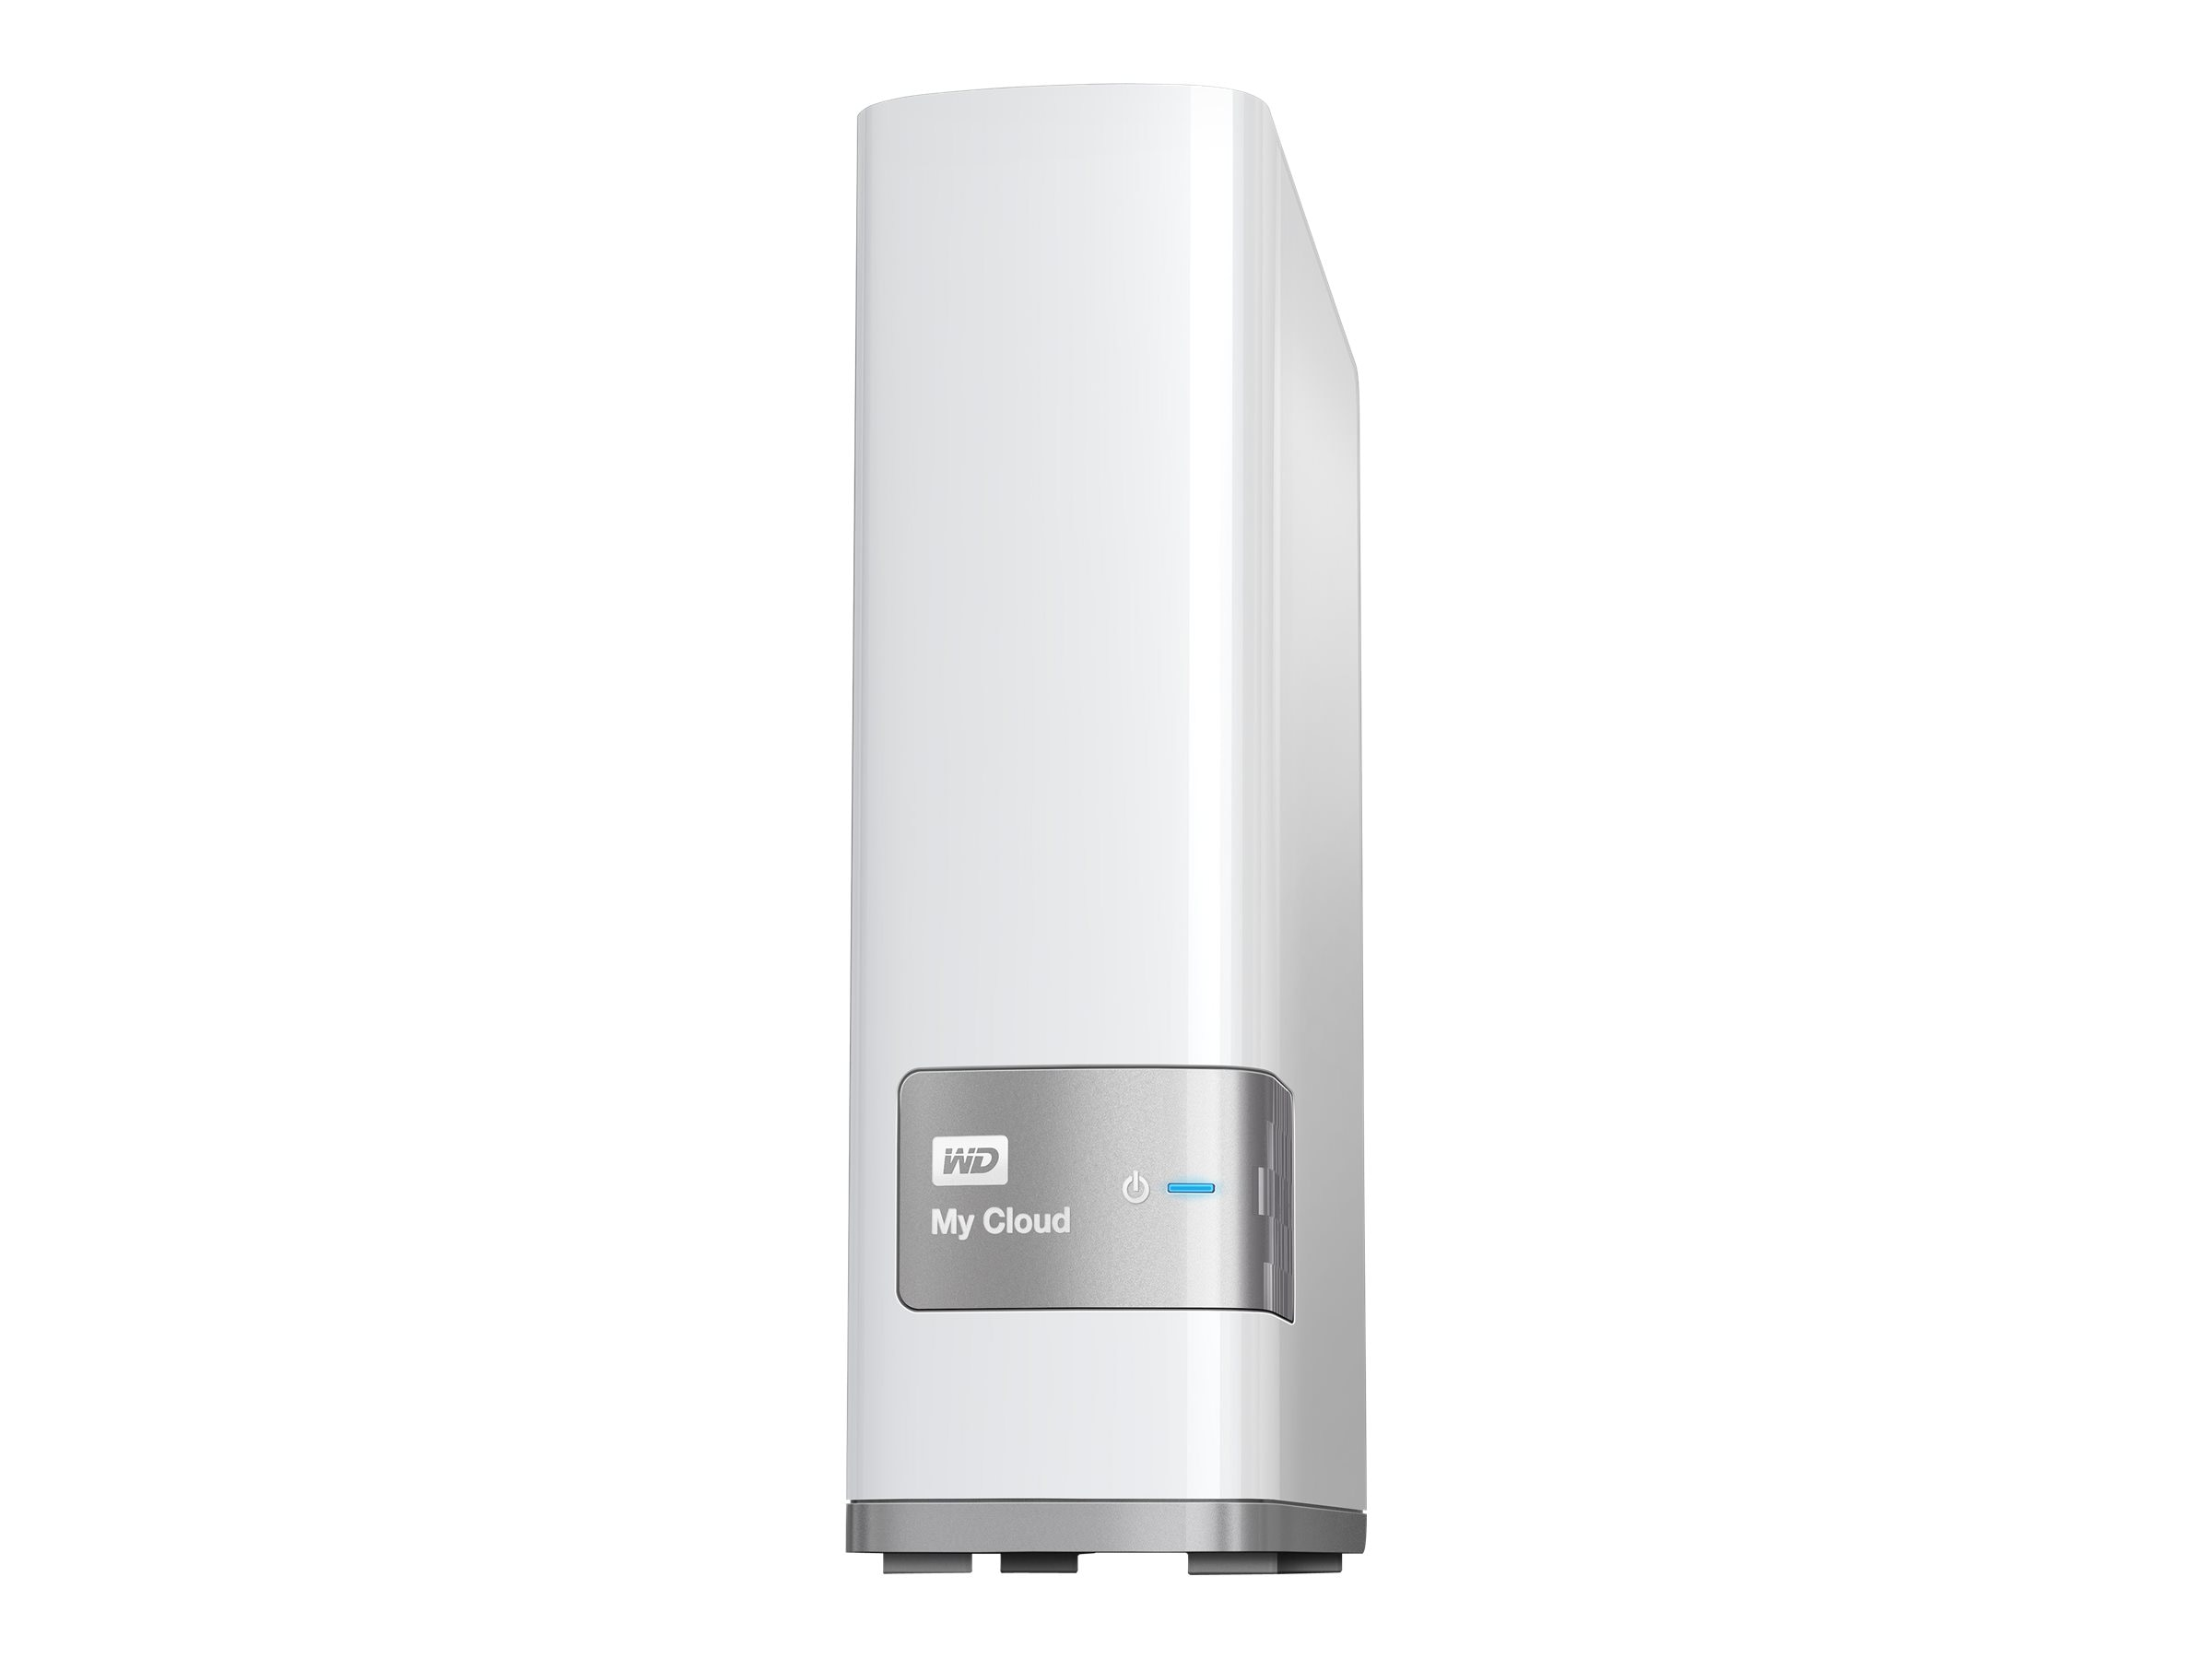 WD WD 3TB My Cloud Personal Cloud Storage, NAS